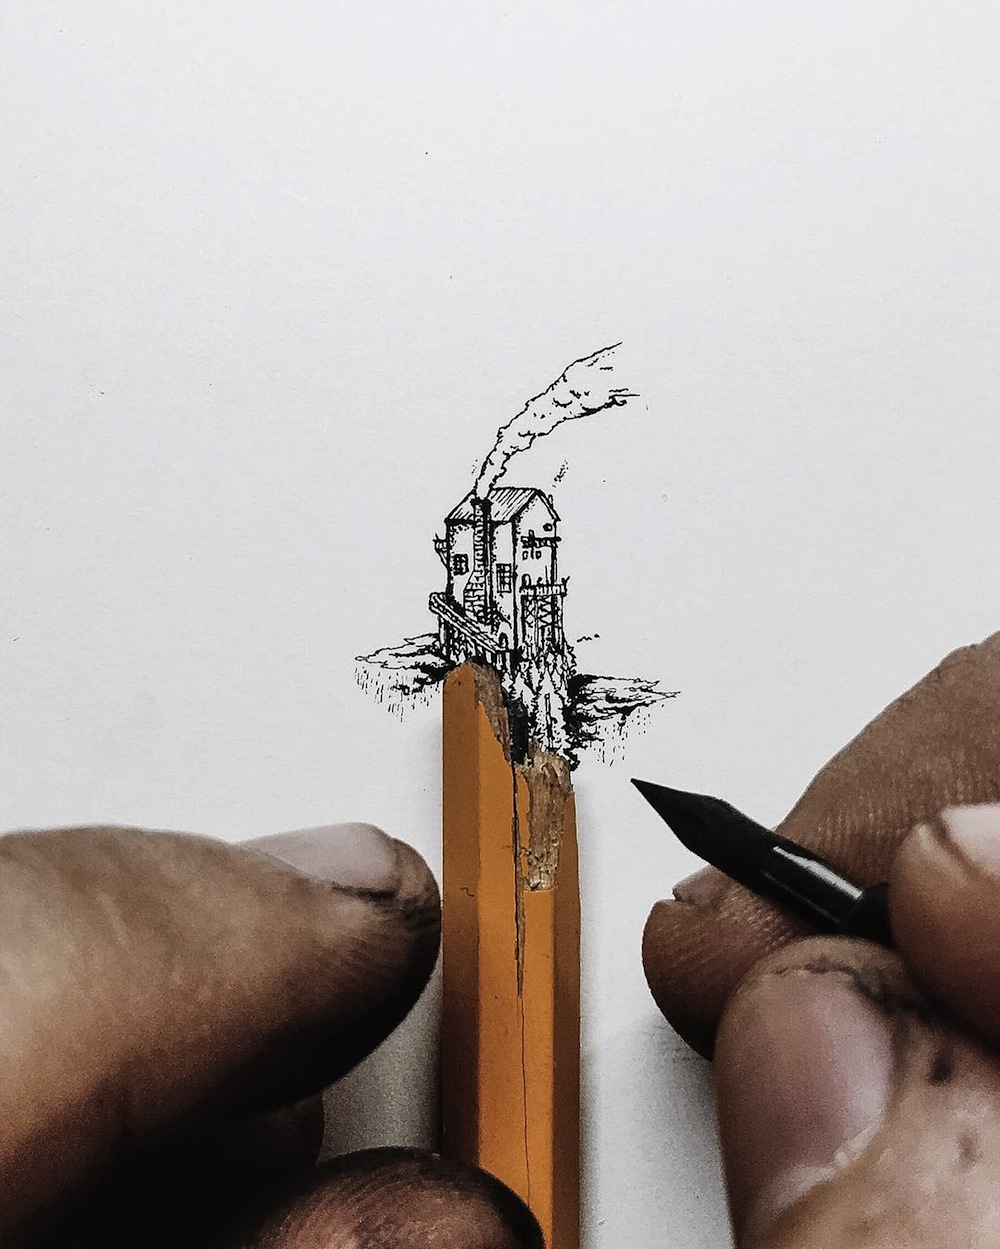 1000x1249 Tiny Ink Drawings Scaled To The Size Of Pencils, Fingers,